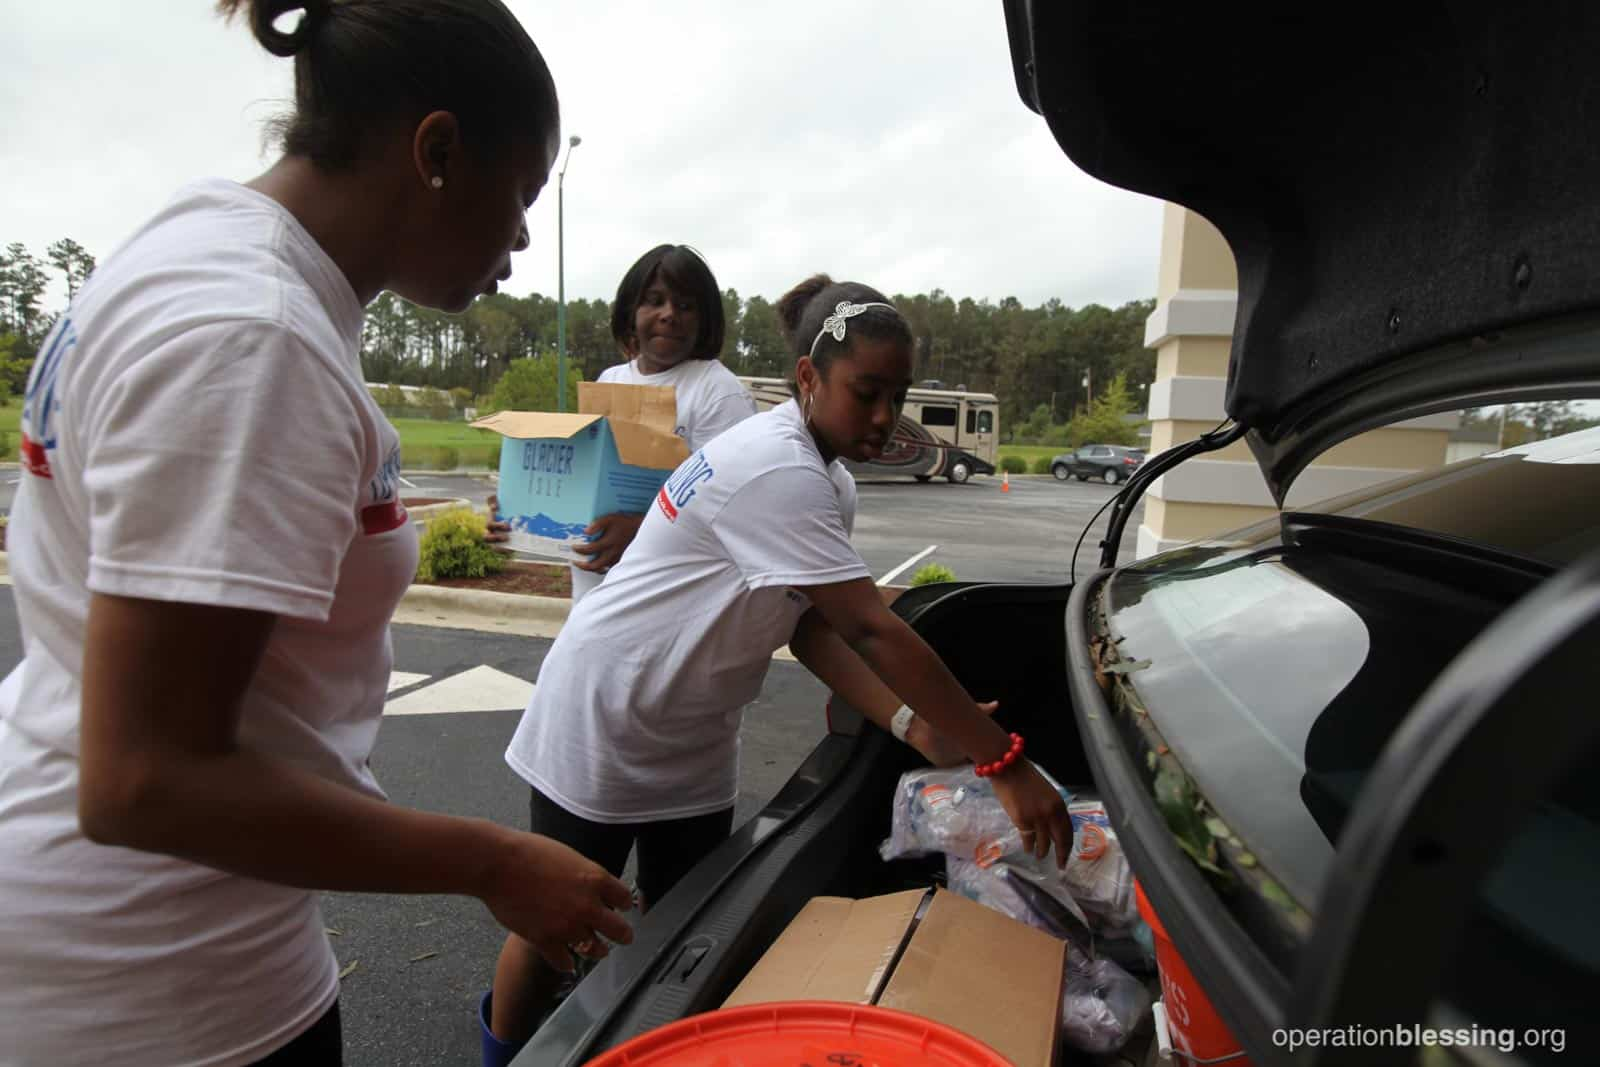 Volunteers loading cars with hurricane relief supplies.